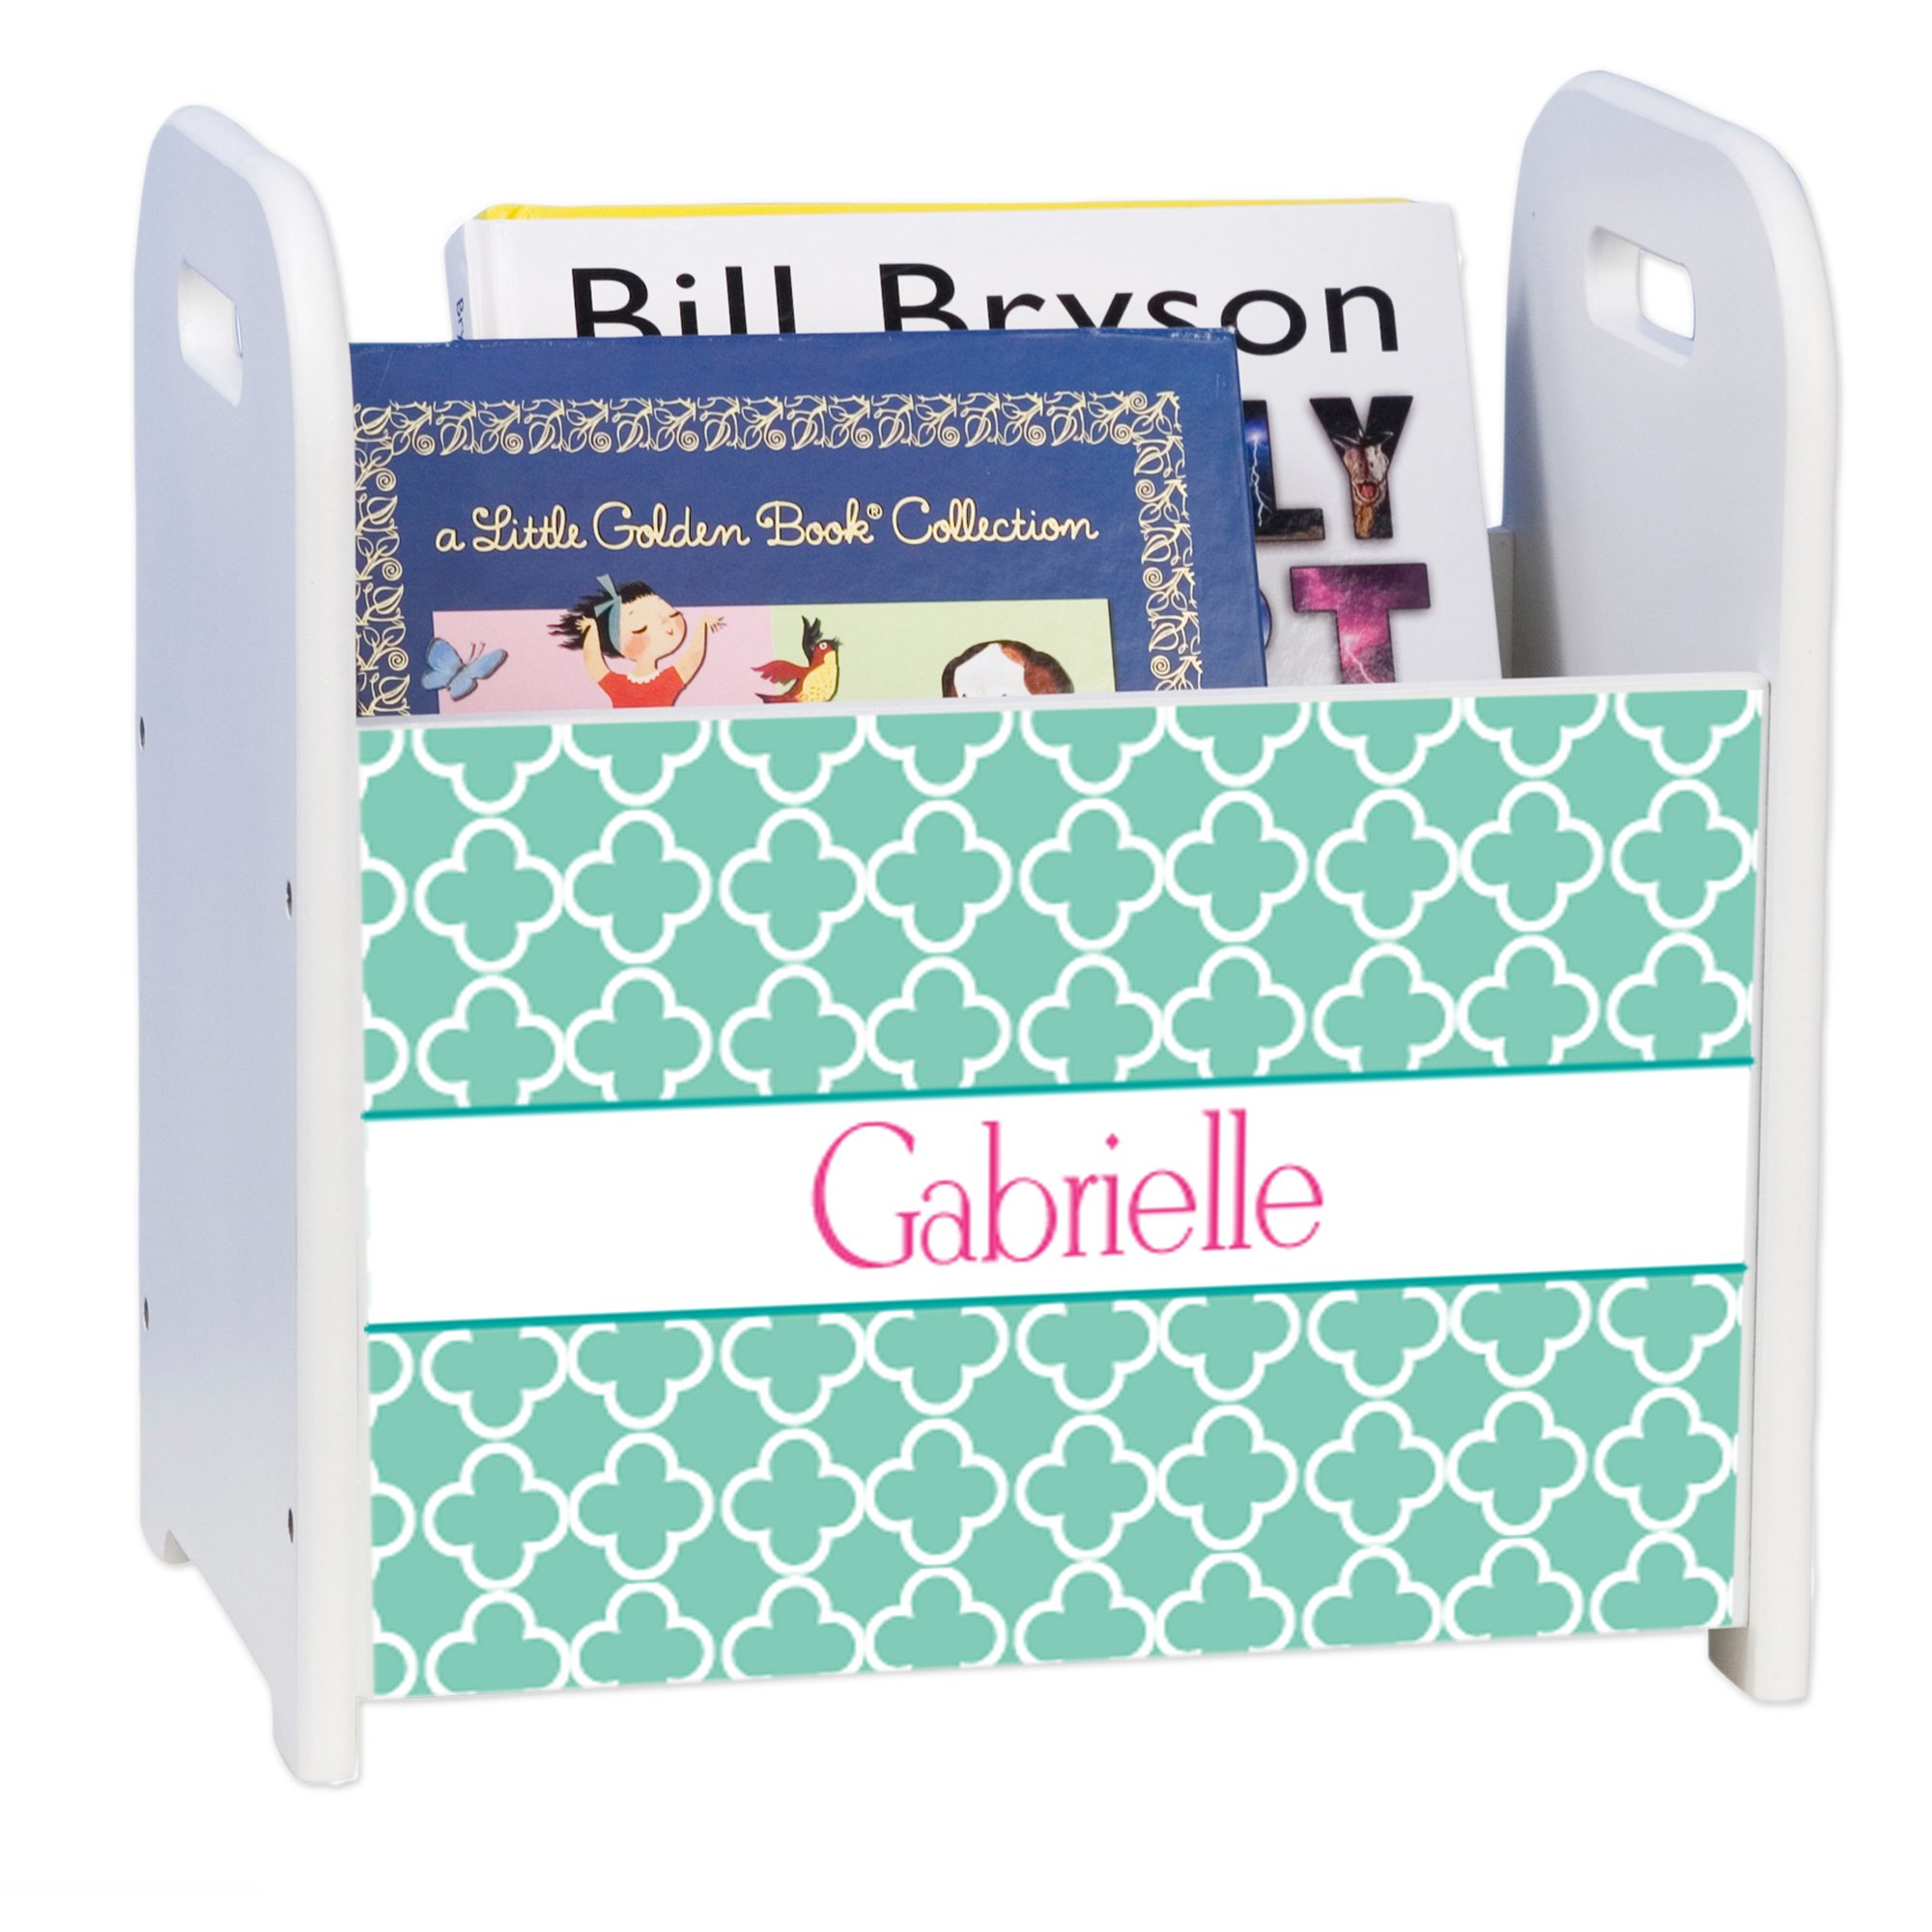 Personalized Tiles Aqua White Book Caddy and Rack by MyBambino (Image #1)